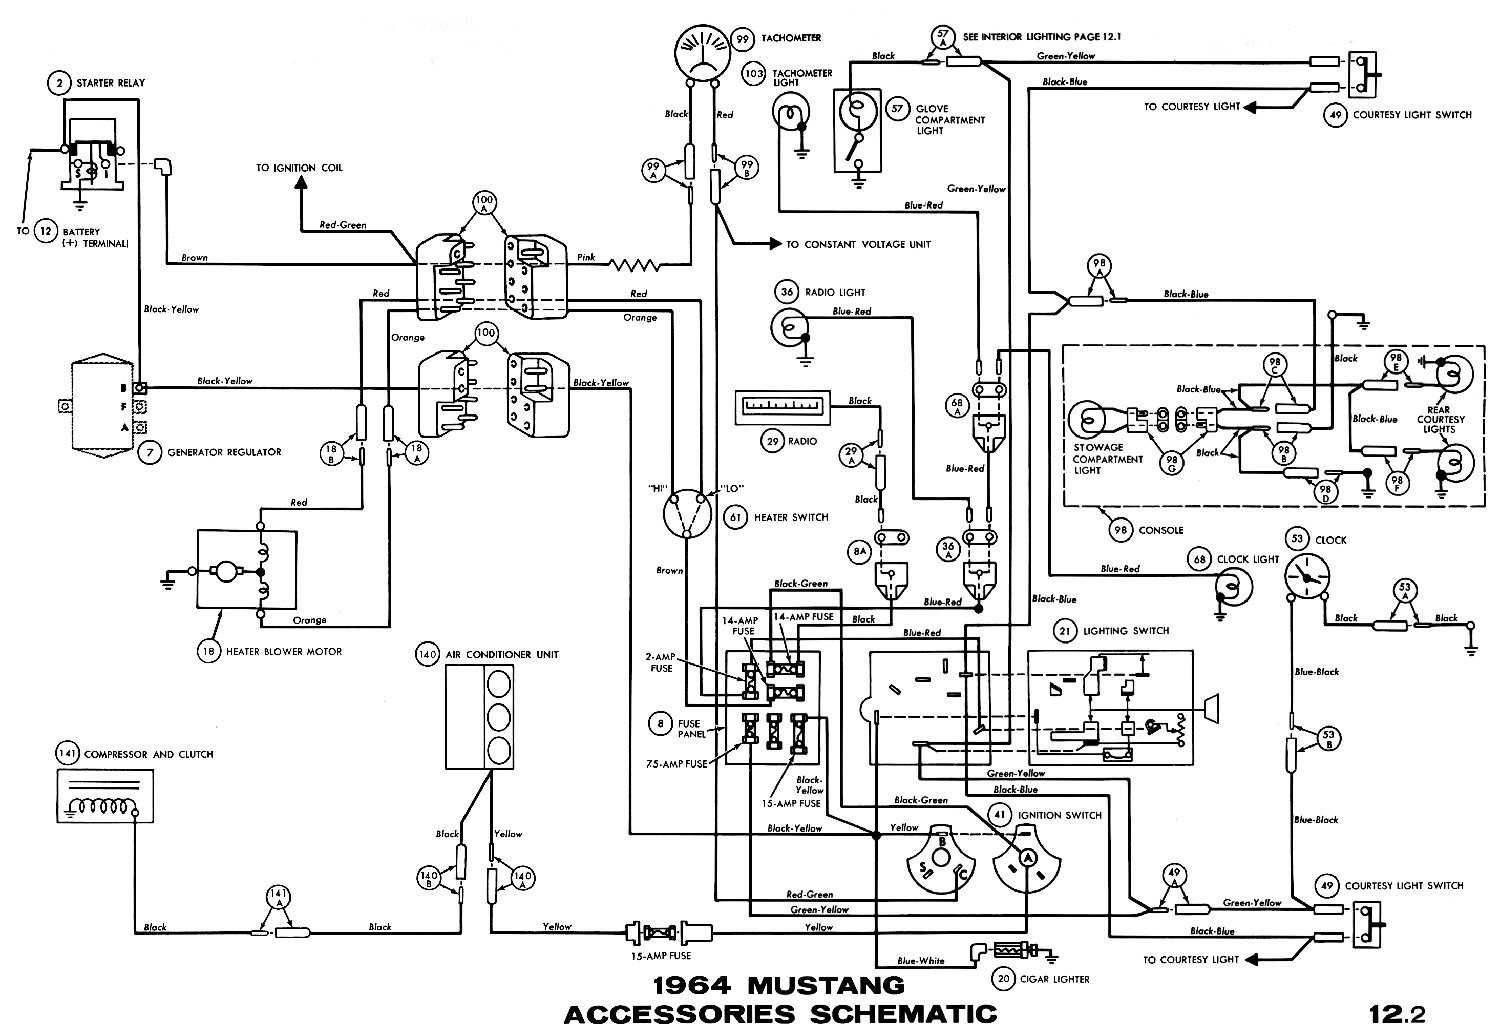 1965 ford mustang wiring wiring diagram  1965 mustang ignition switch wiring diagram #14